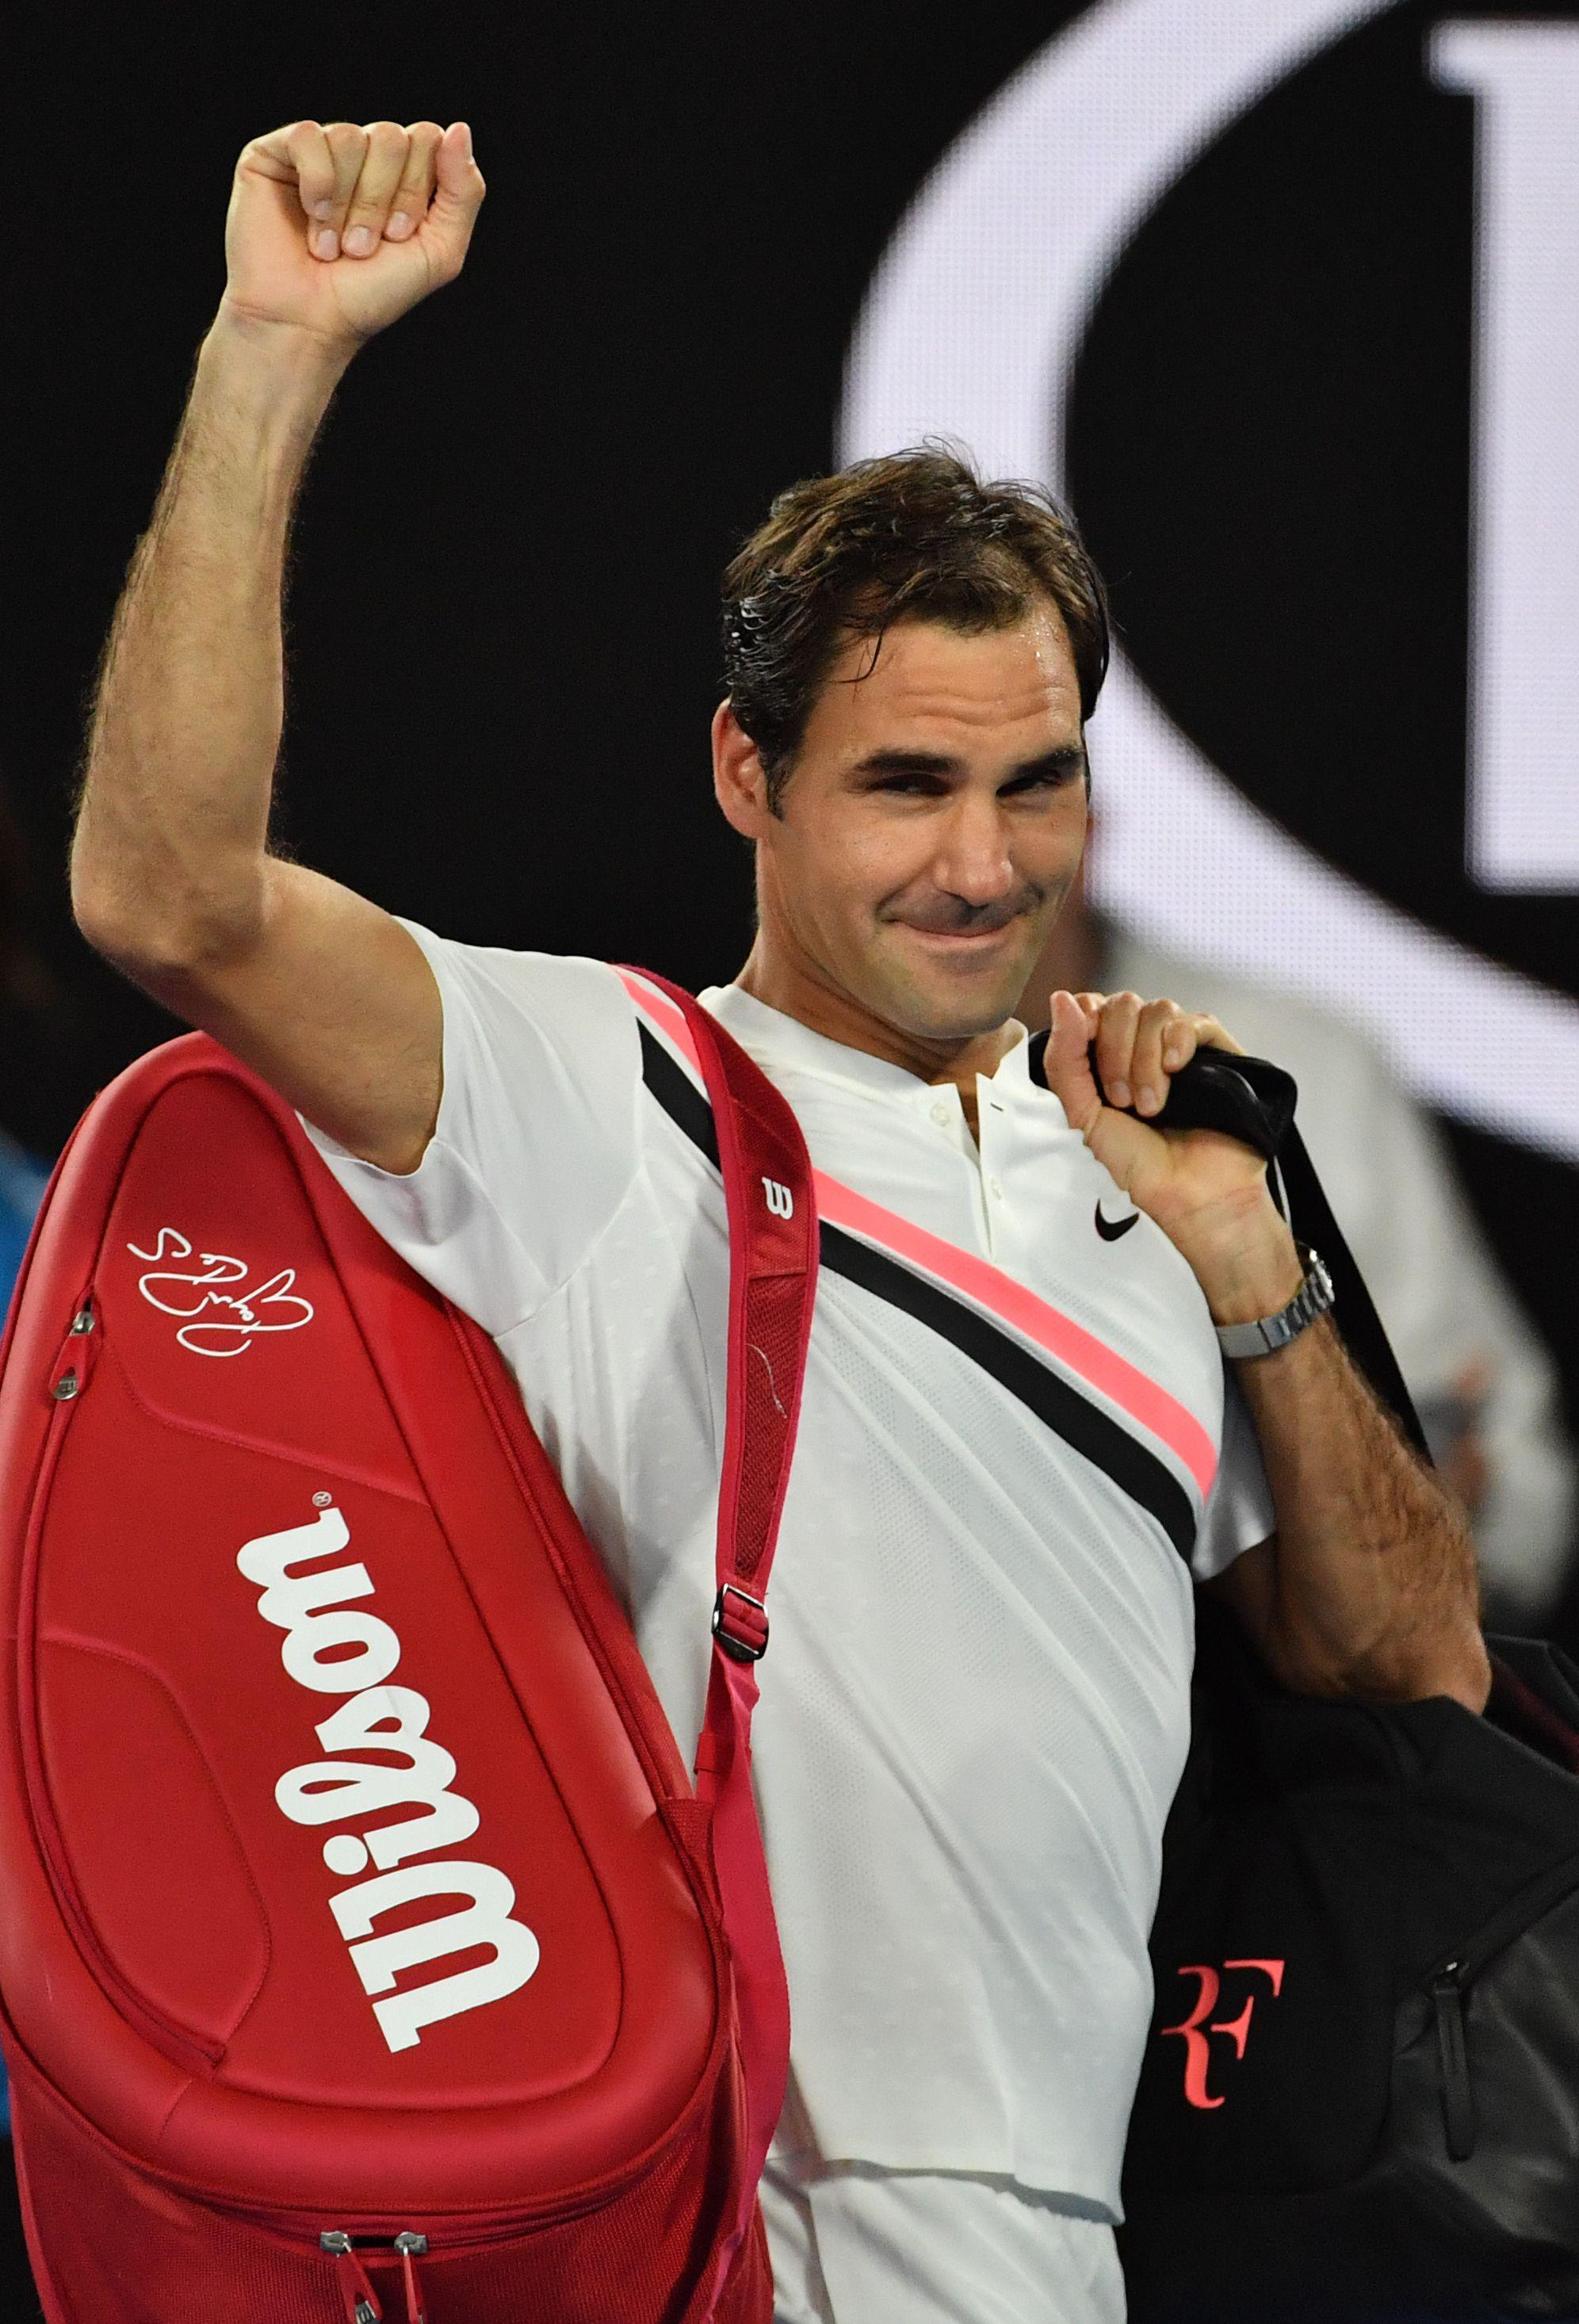 Roger Federer looks almost embarrassed as he celebrates win in Melbourne